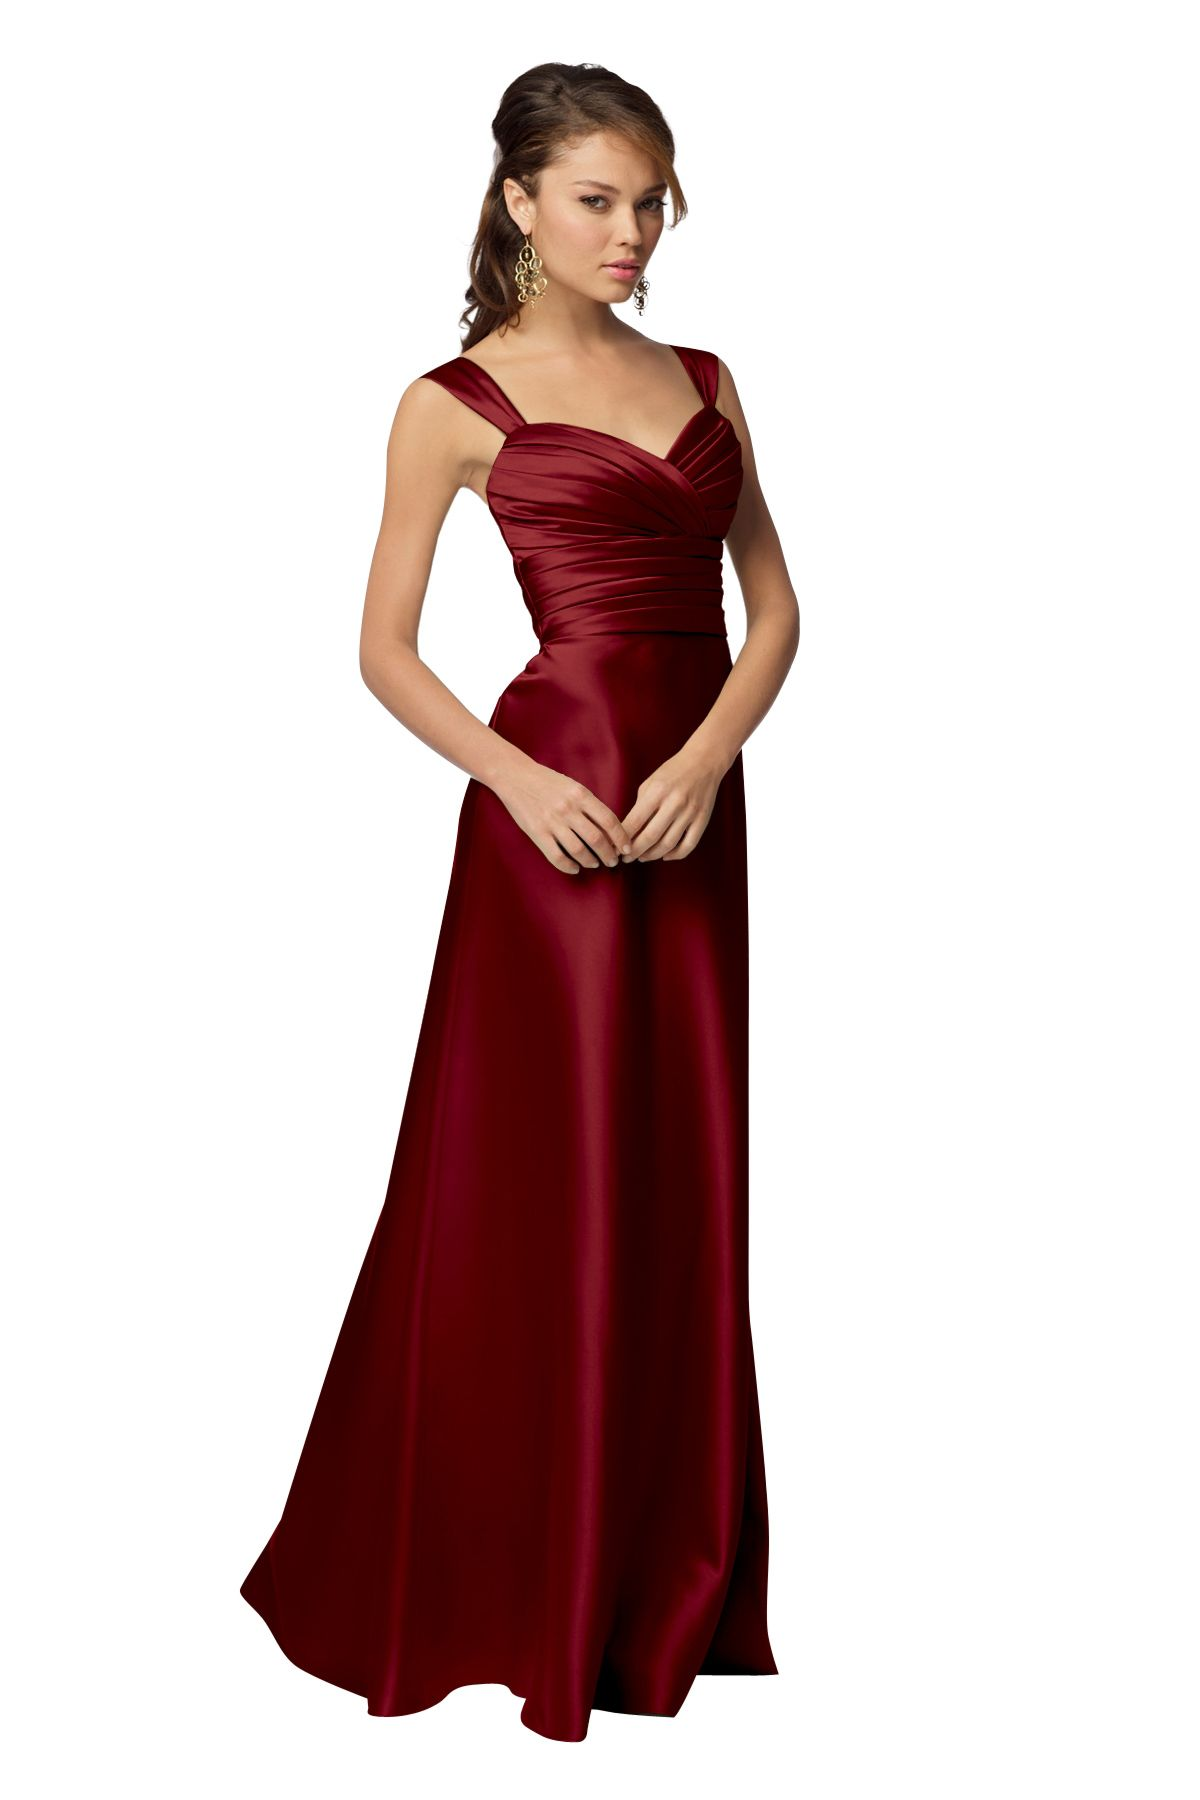 Dark Wine Red Or Cherry Wtoo 961 Bridesmaid Dress Weddington Way